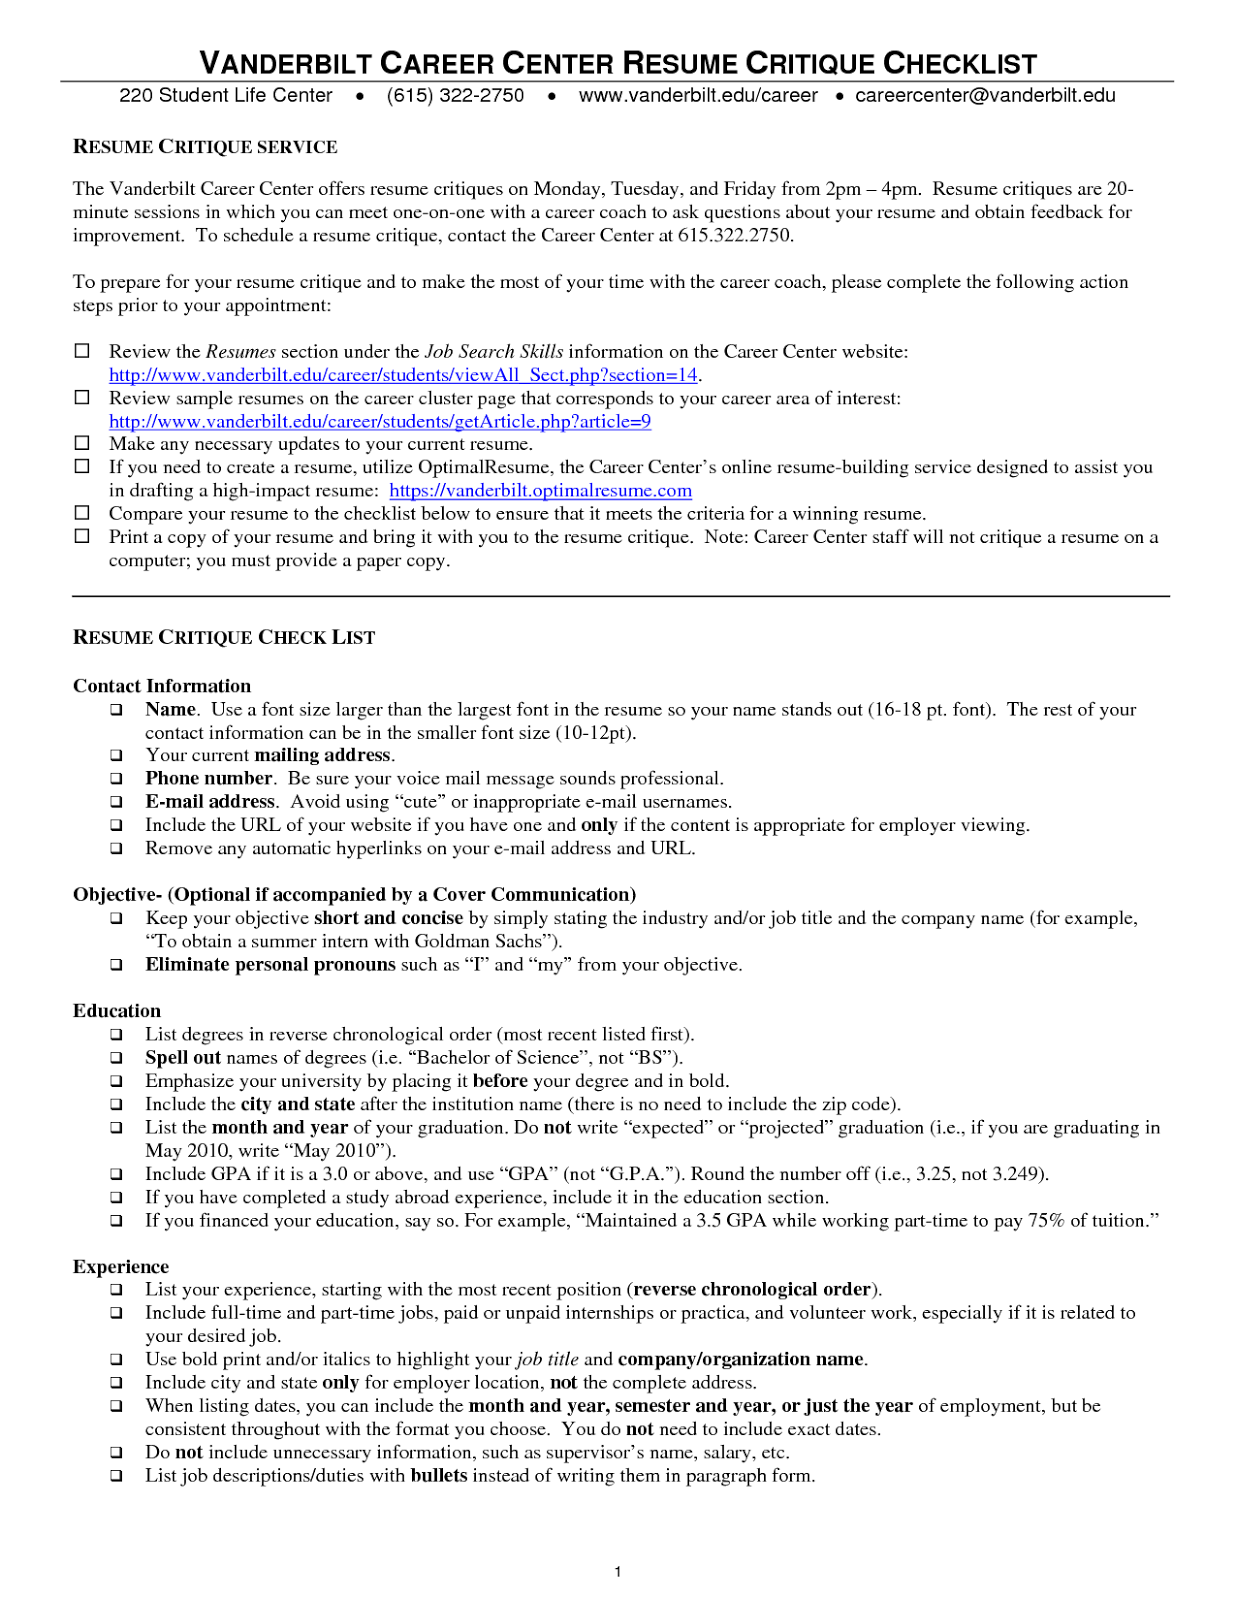 Skills For Law School Resume Sample Of A Resume For Law School Free Sample Resumes